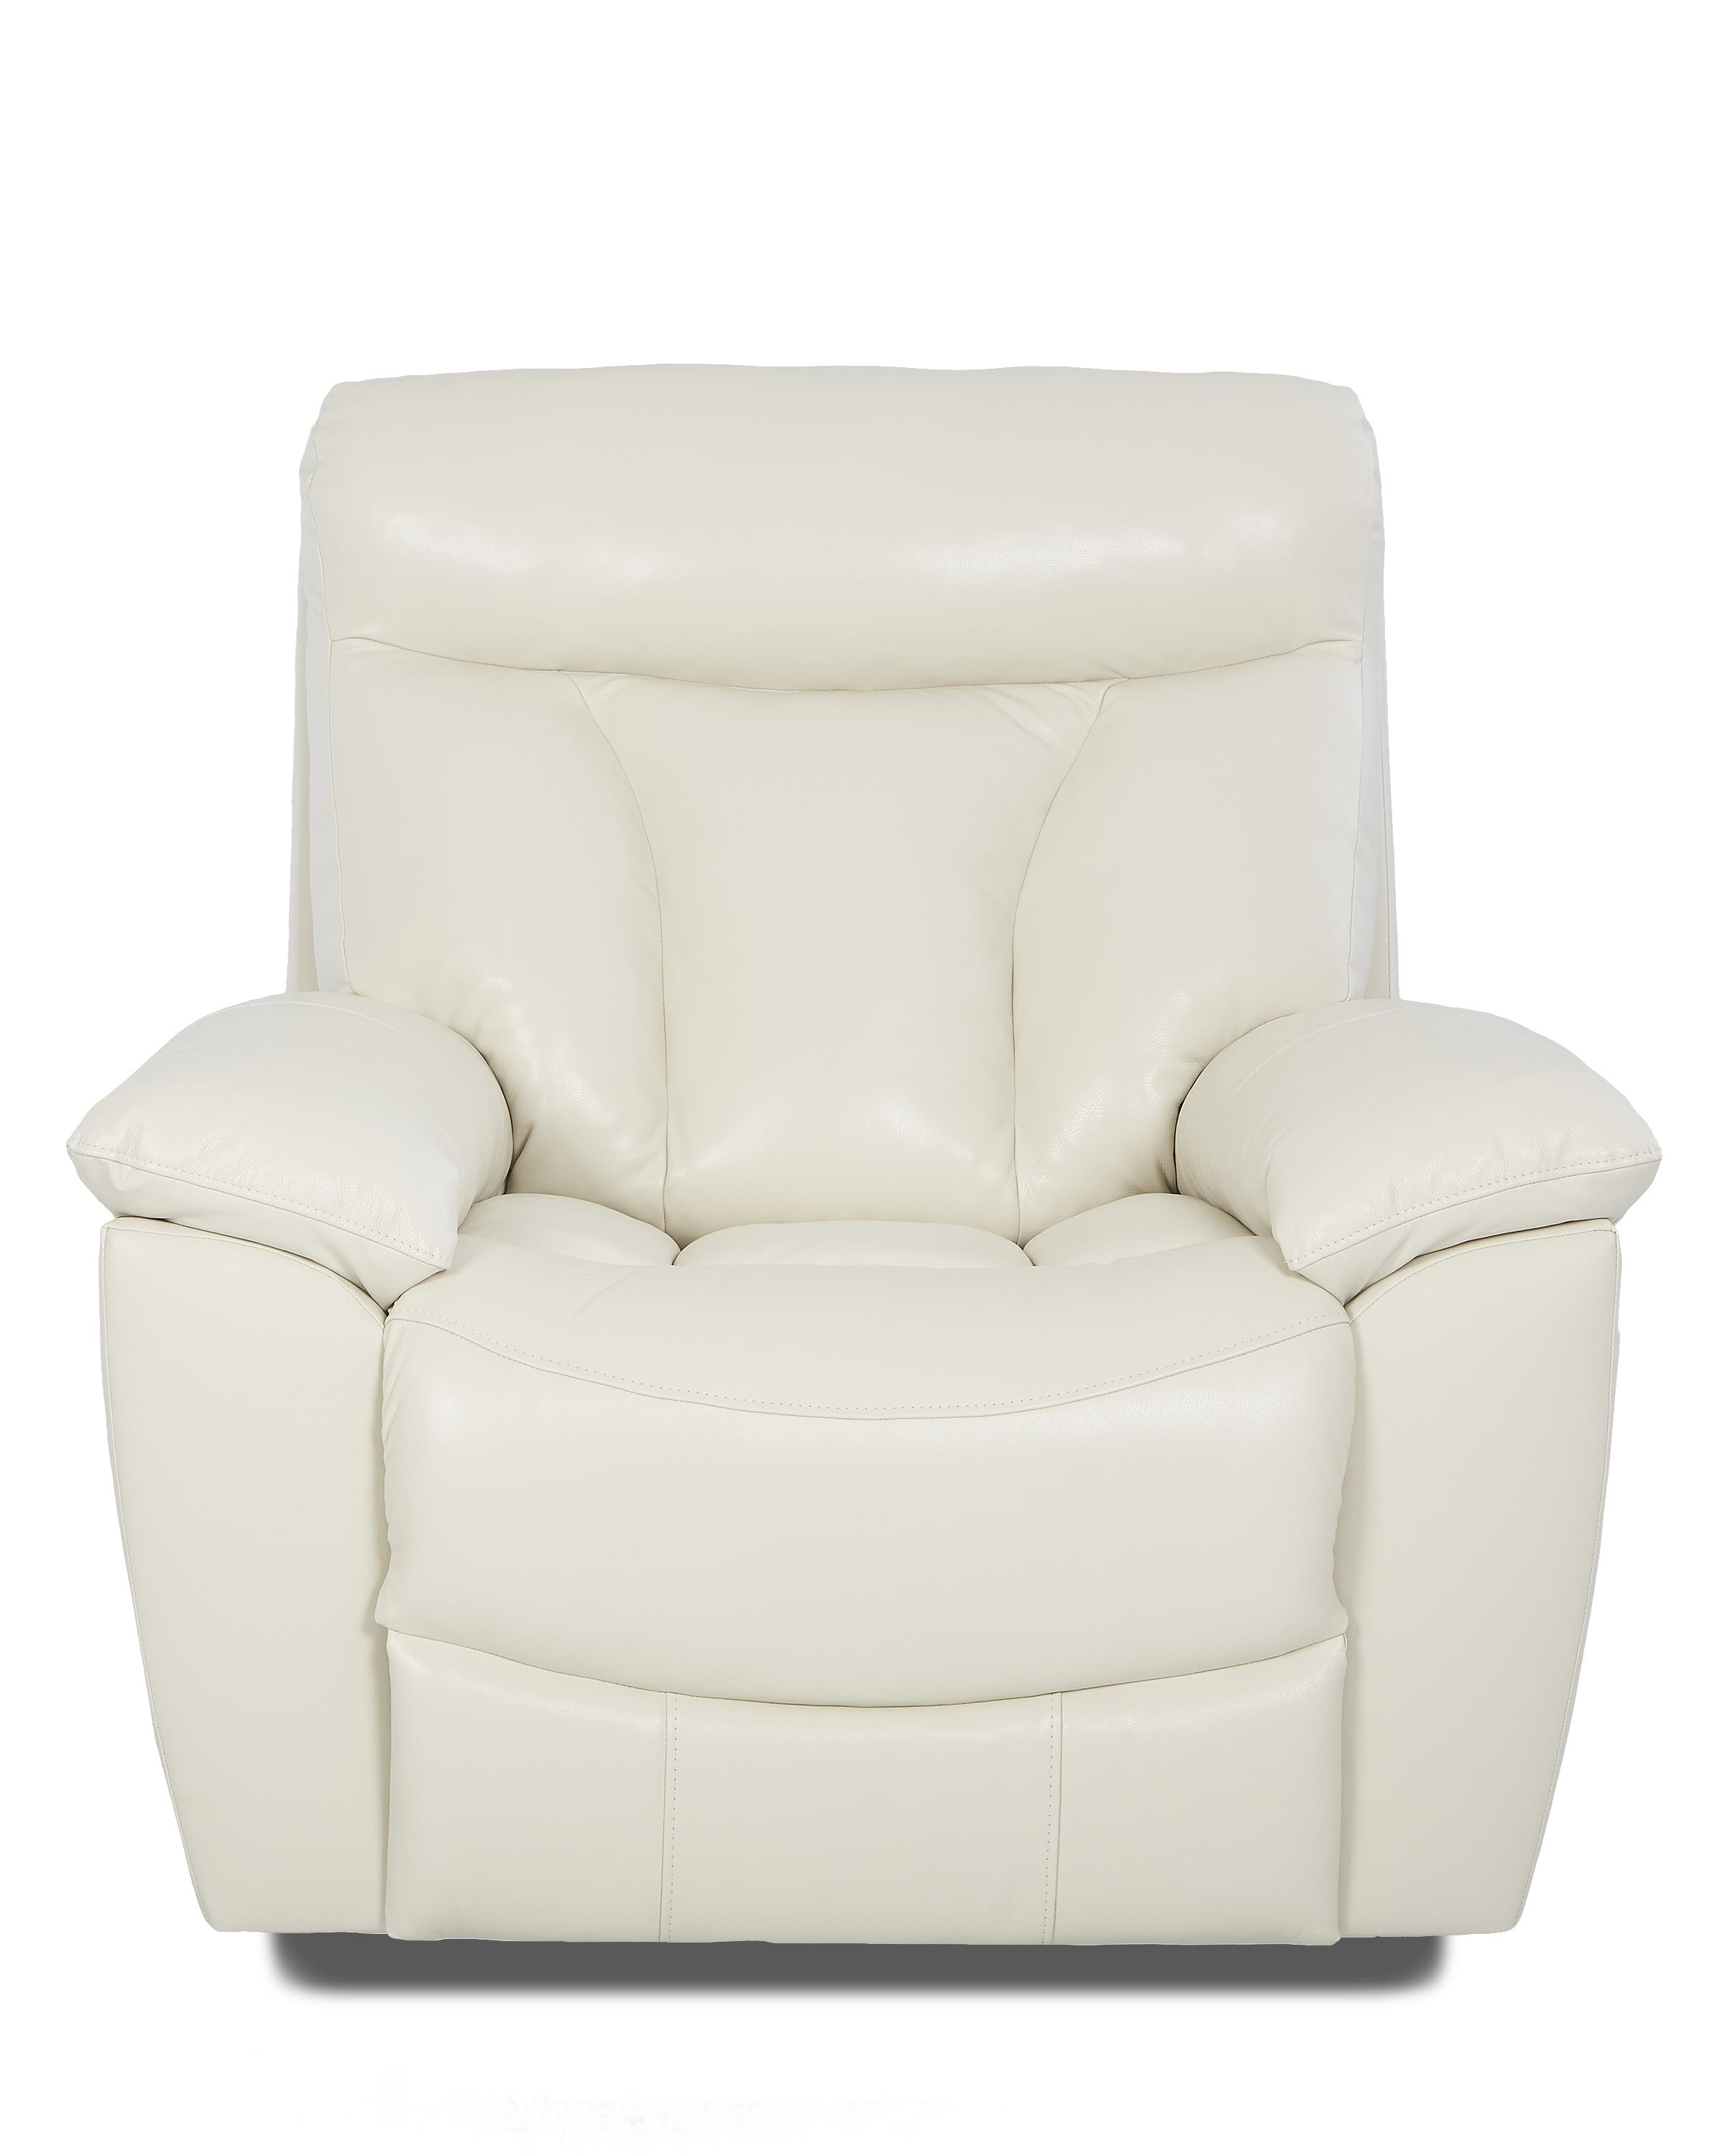 Deluxe Reclining Chair by Klaussner at Johnny Janosik